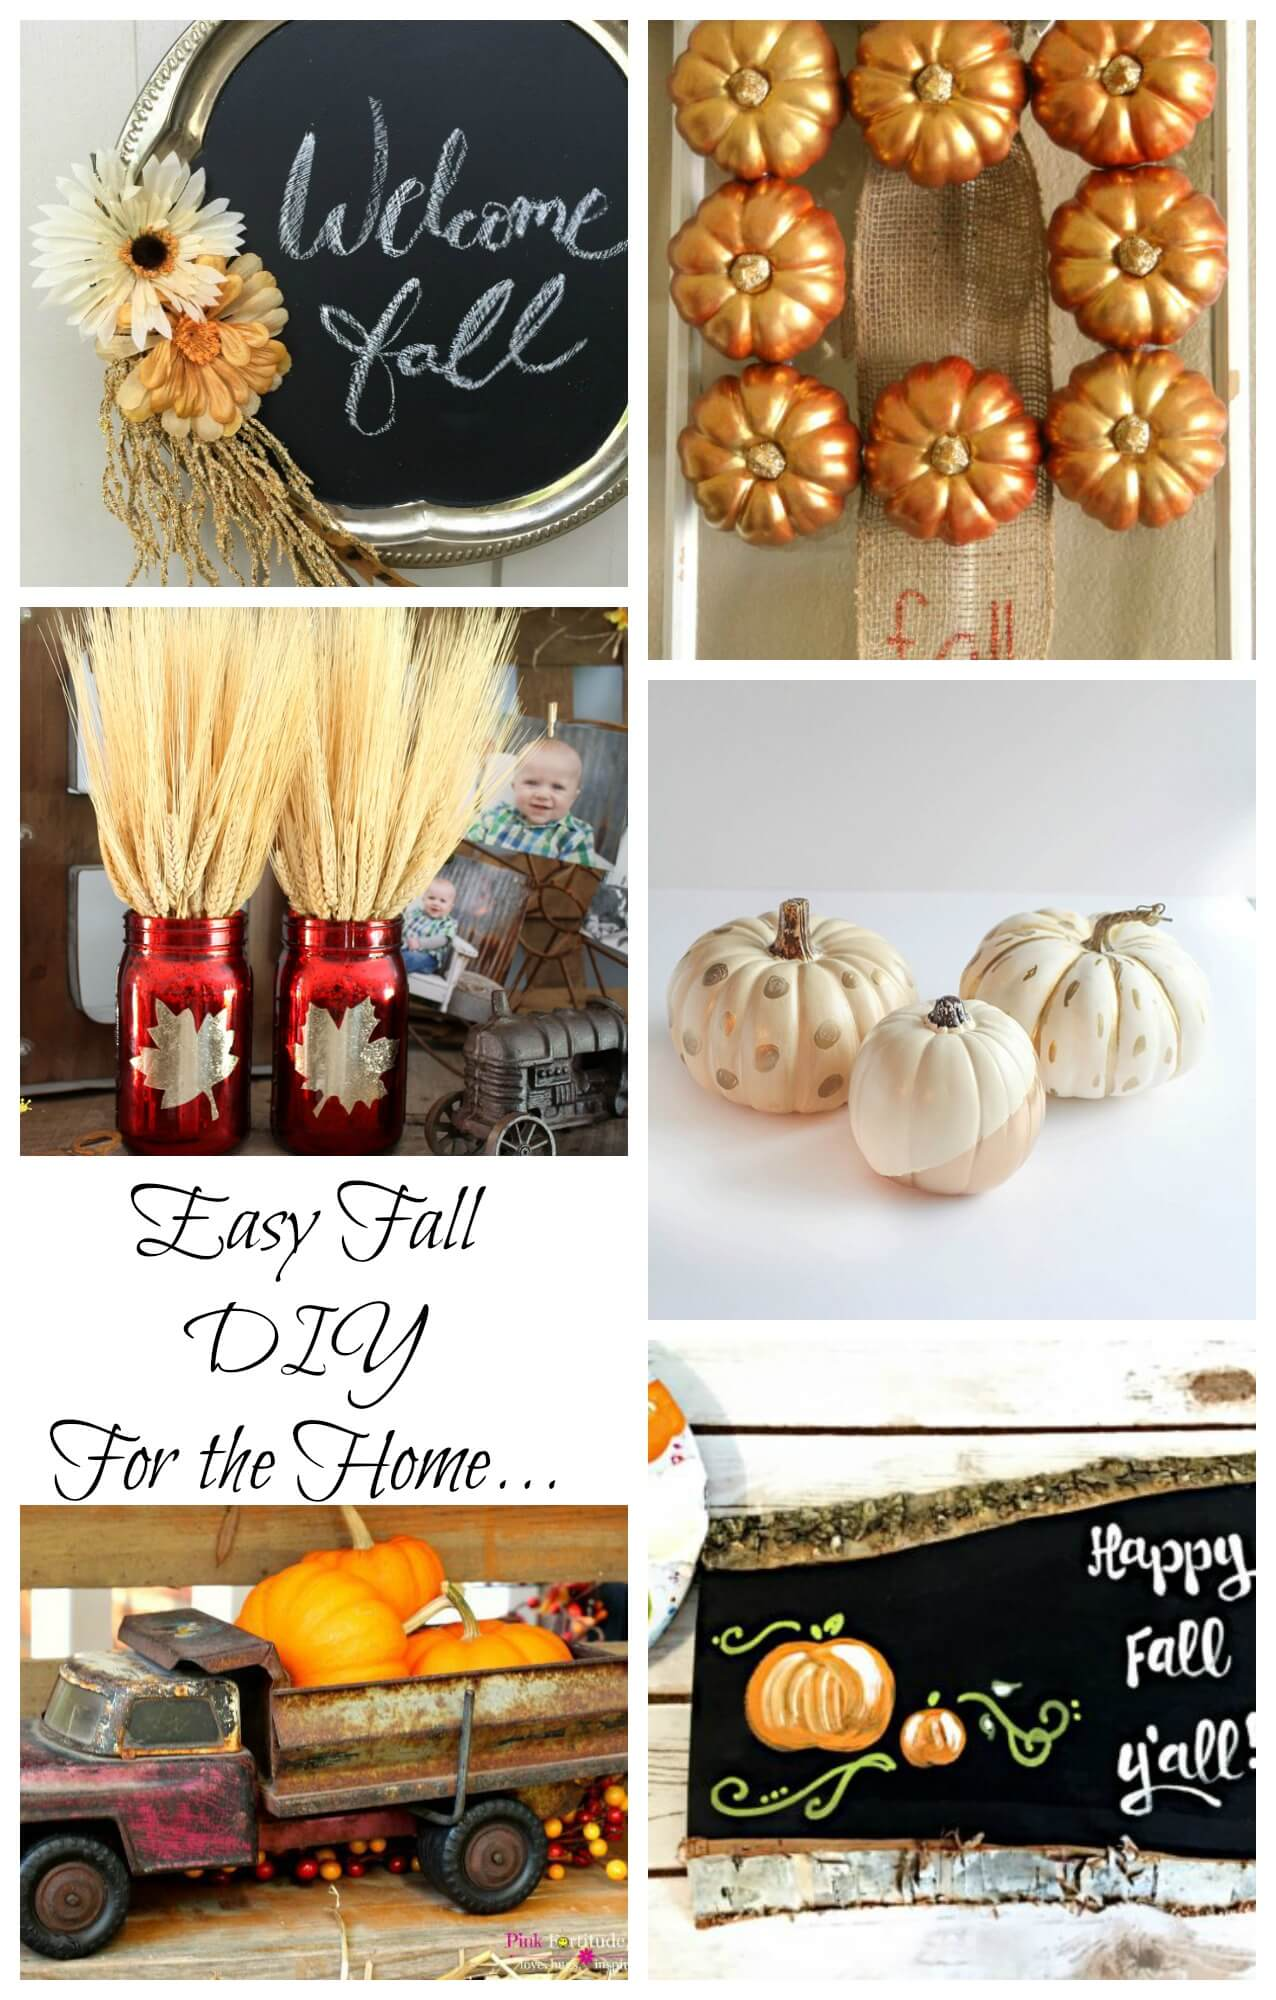 easy fall diy for the home features from Nap-Time Creations